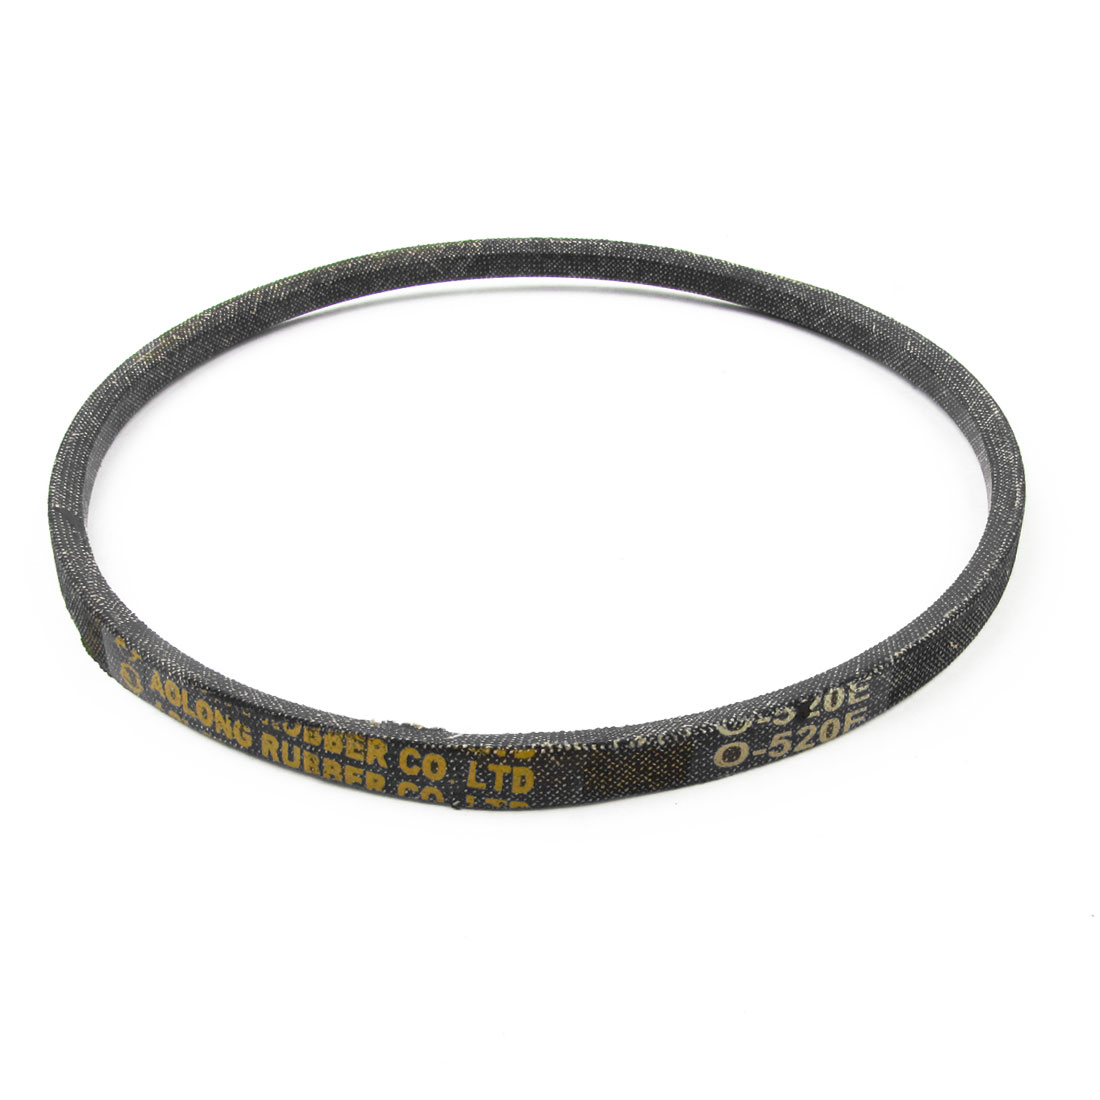 9mm Outer Wide 6mm Thickness O-520E Washing Machine Repair Part Rubber Belt